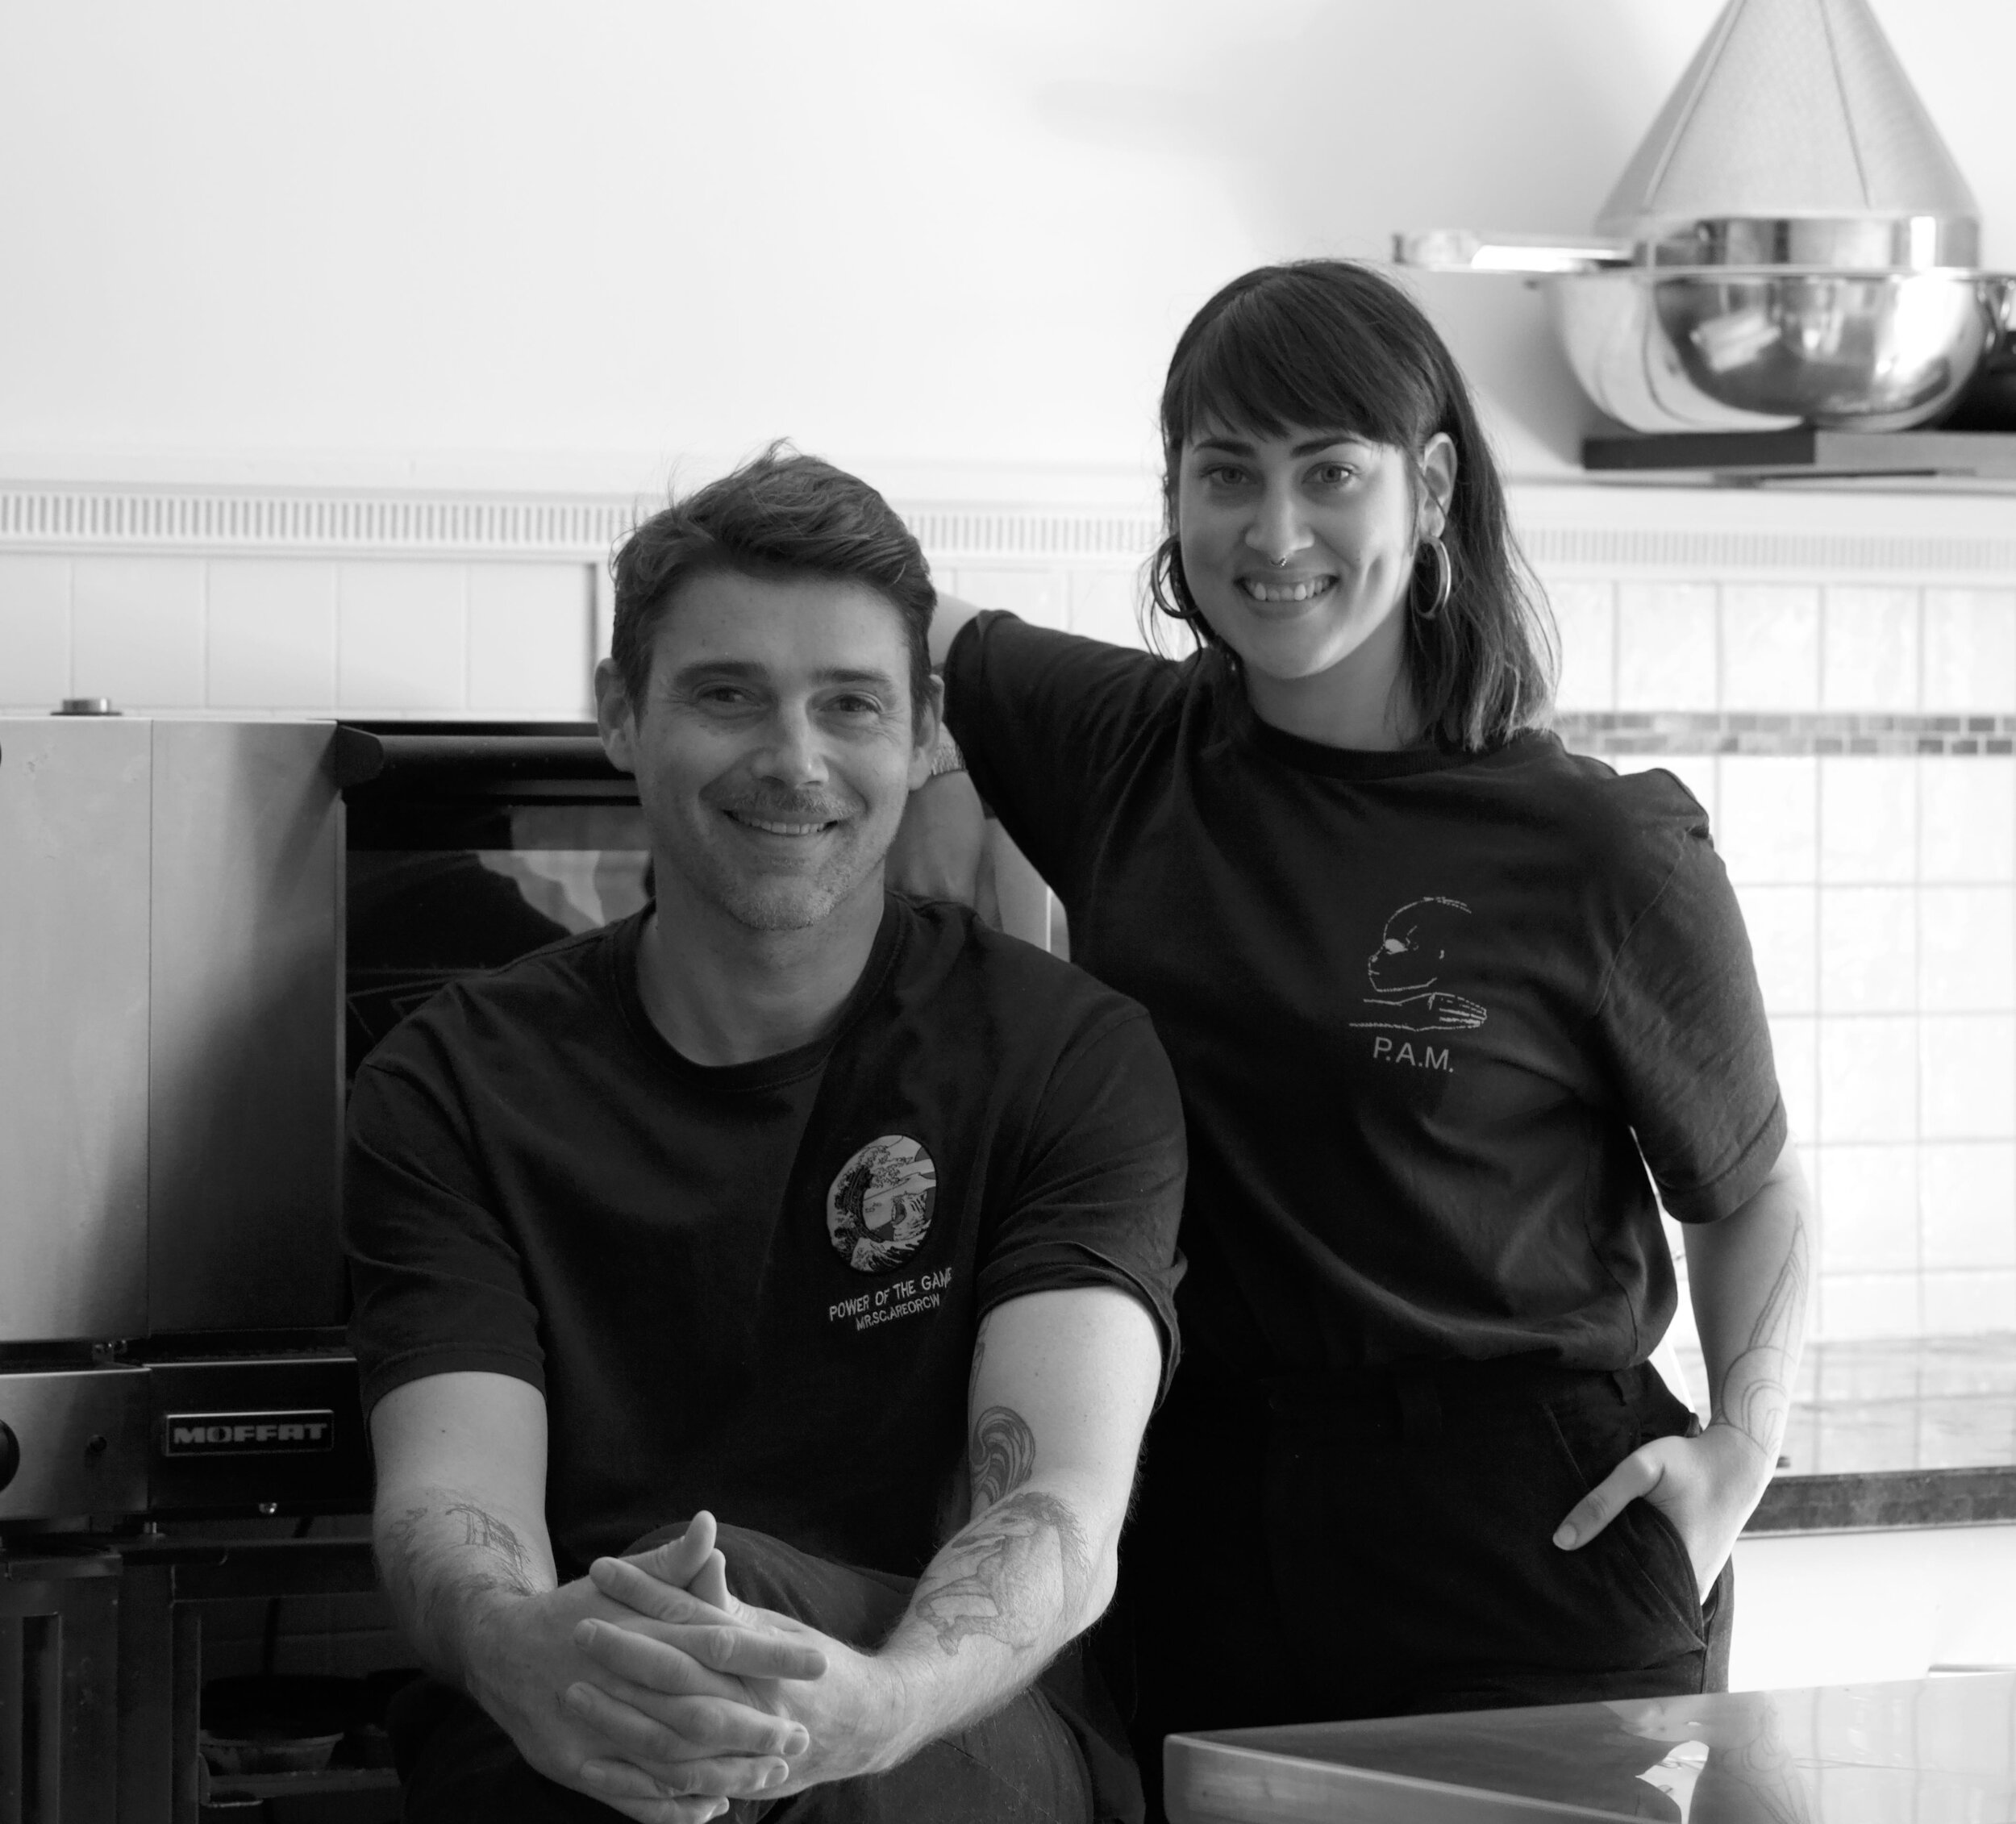 Co-founders Paul and Emma.